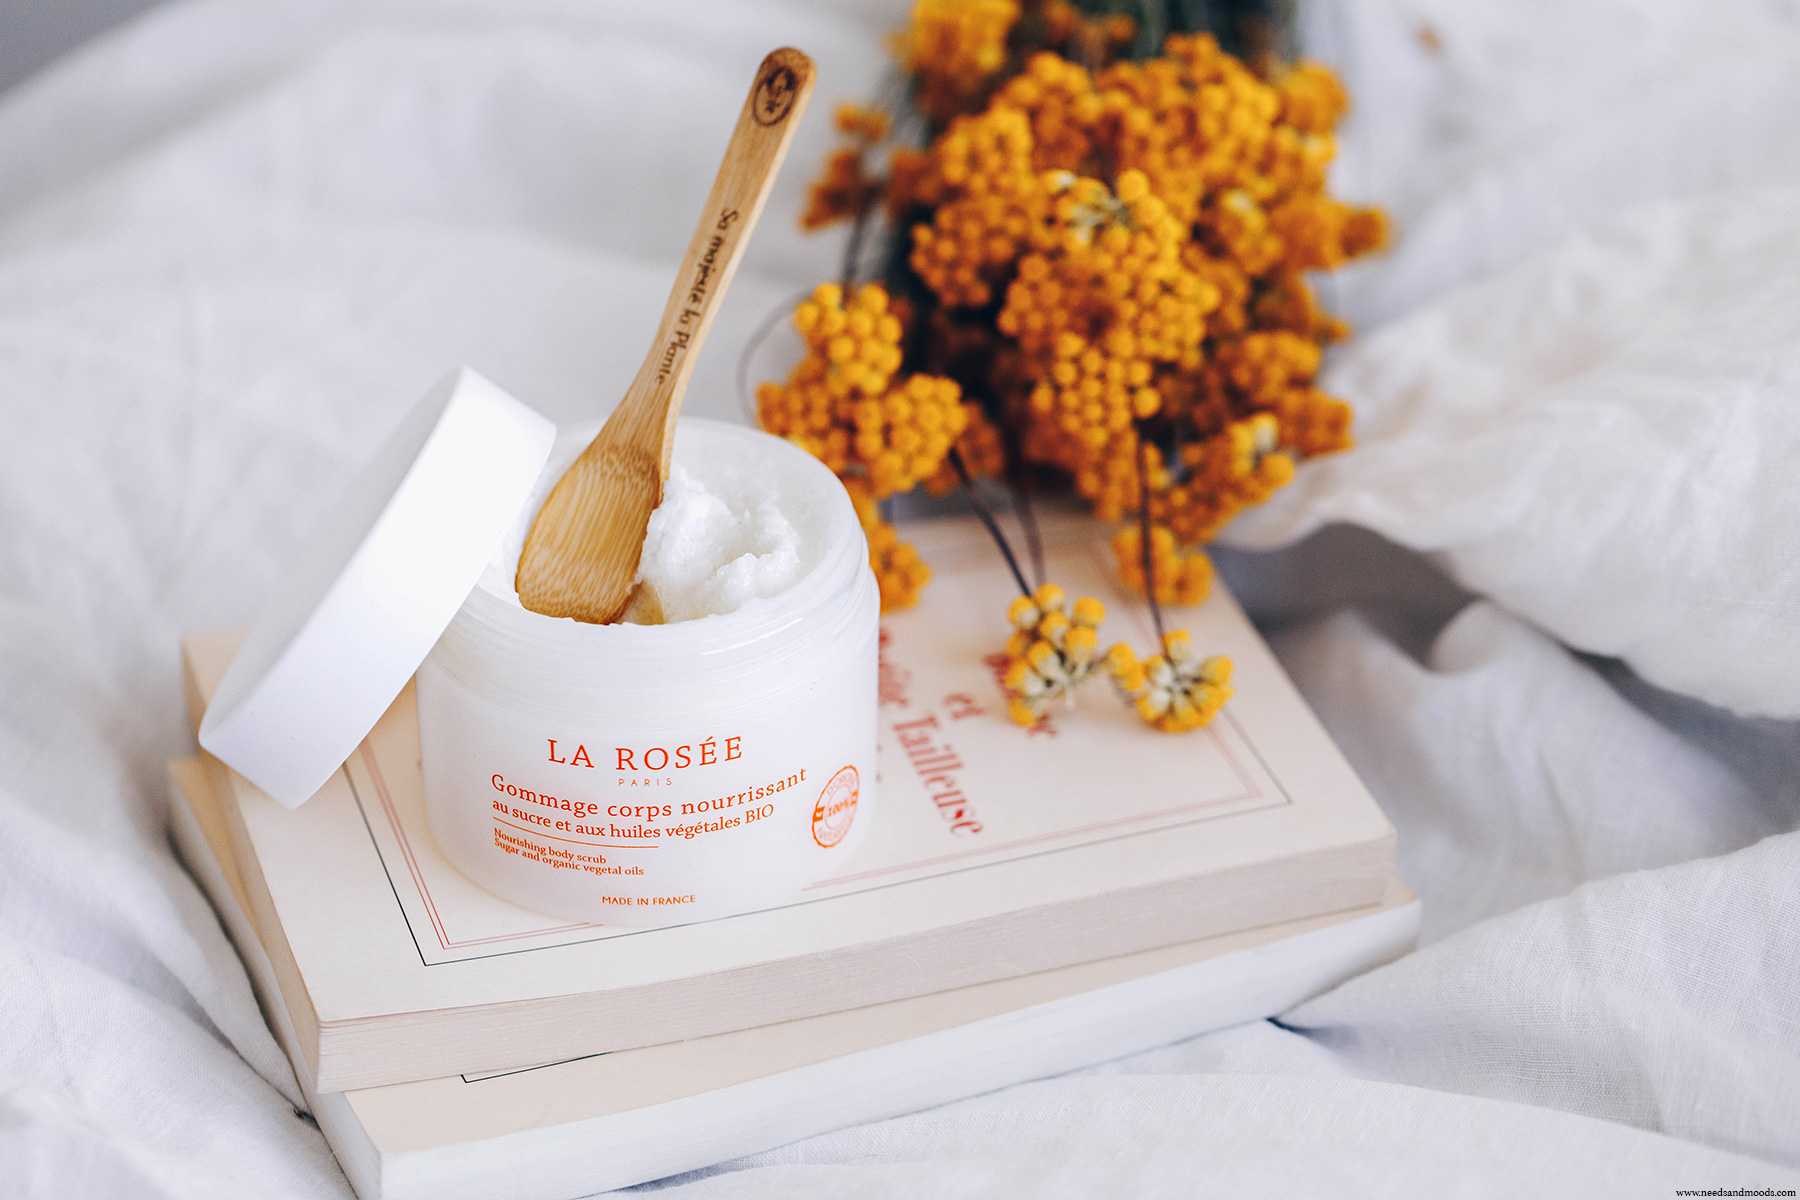 la rosee cosmetiques gommage corps nourrissant